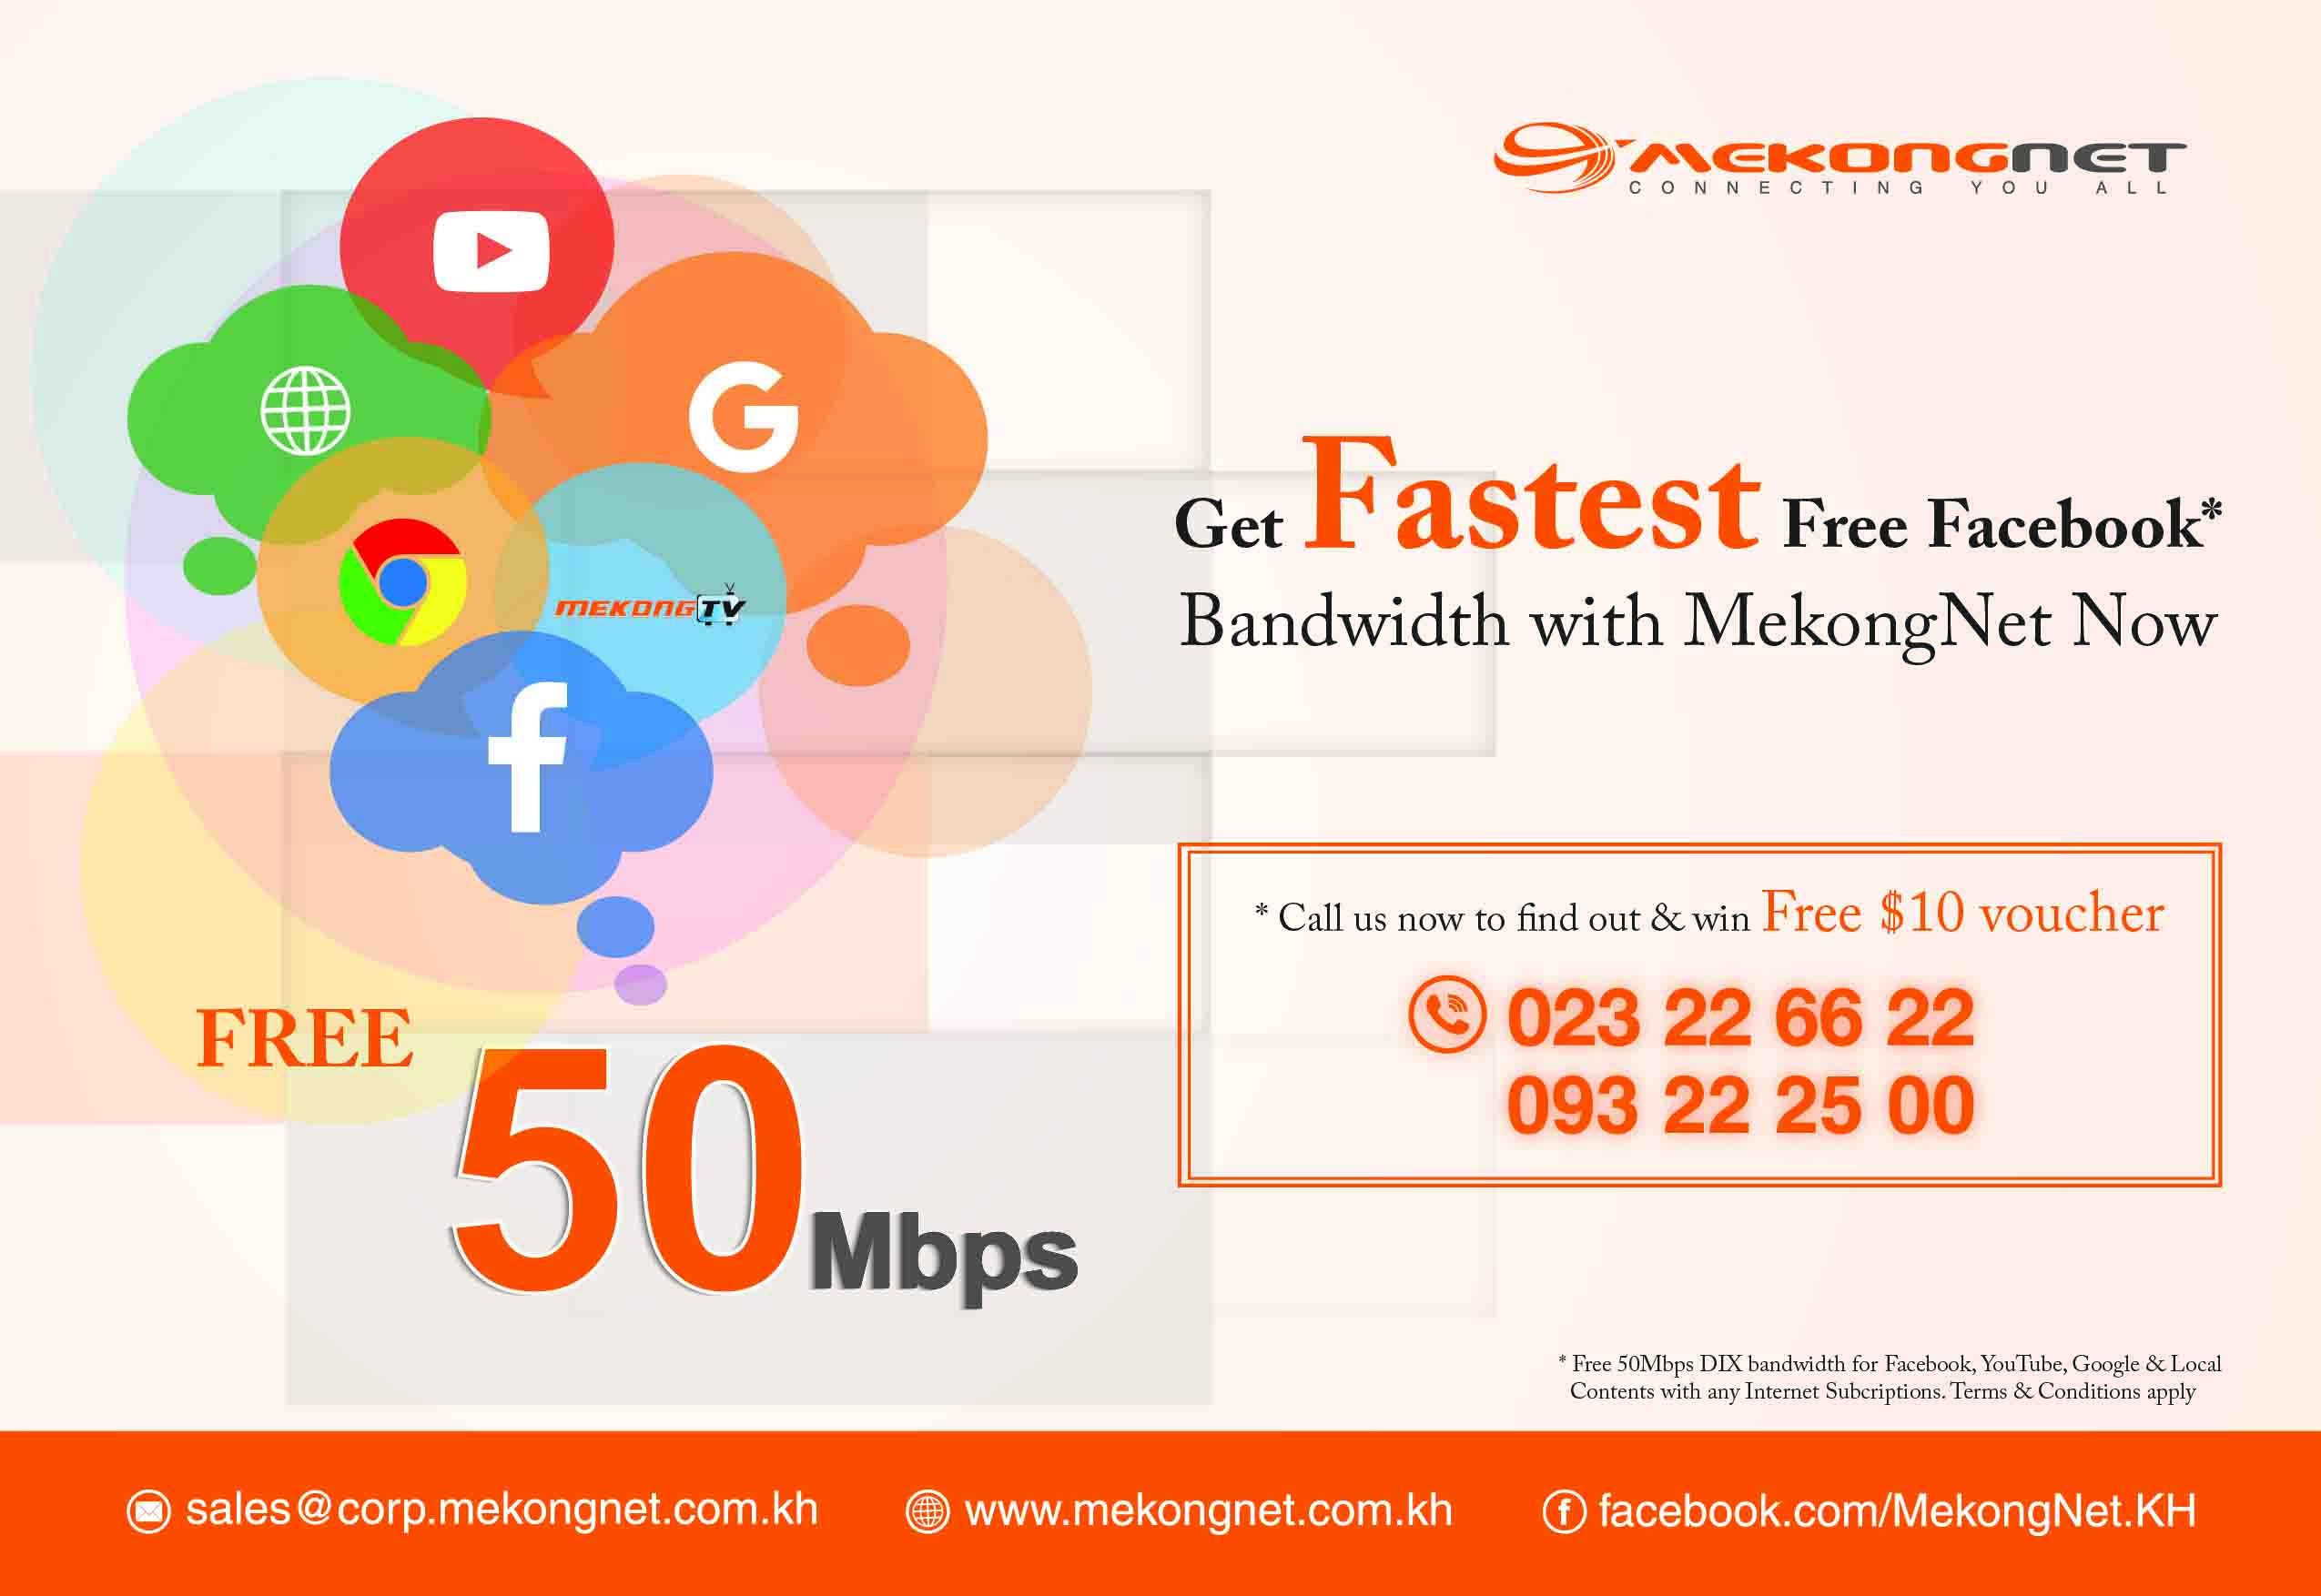 Get Fastest Free Facebook* Bandwidth with MekongNet Now